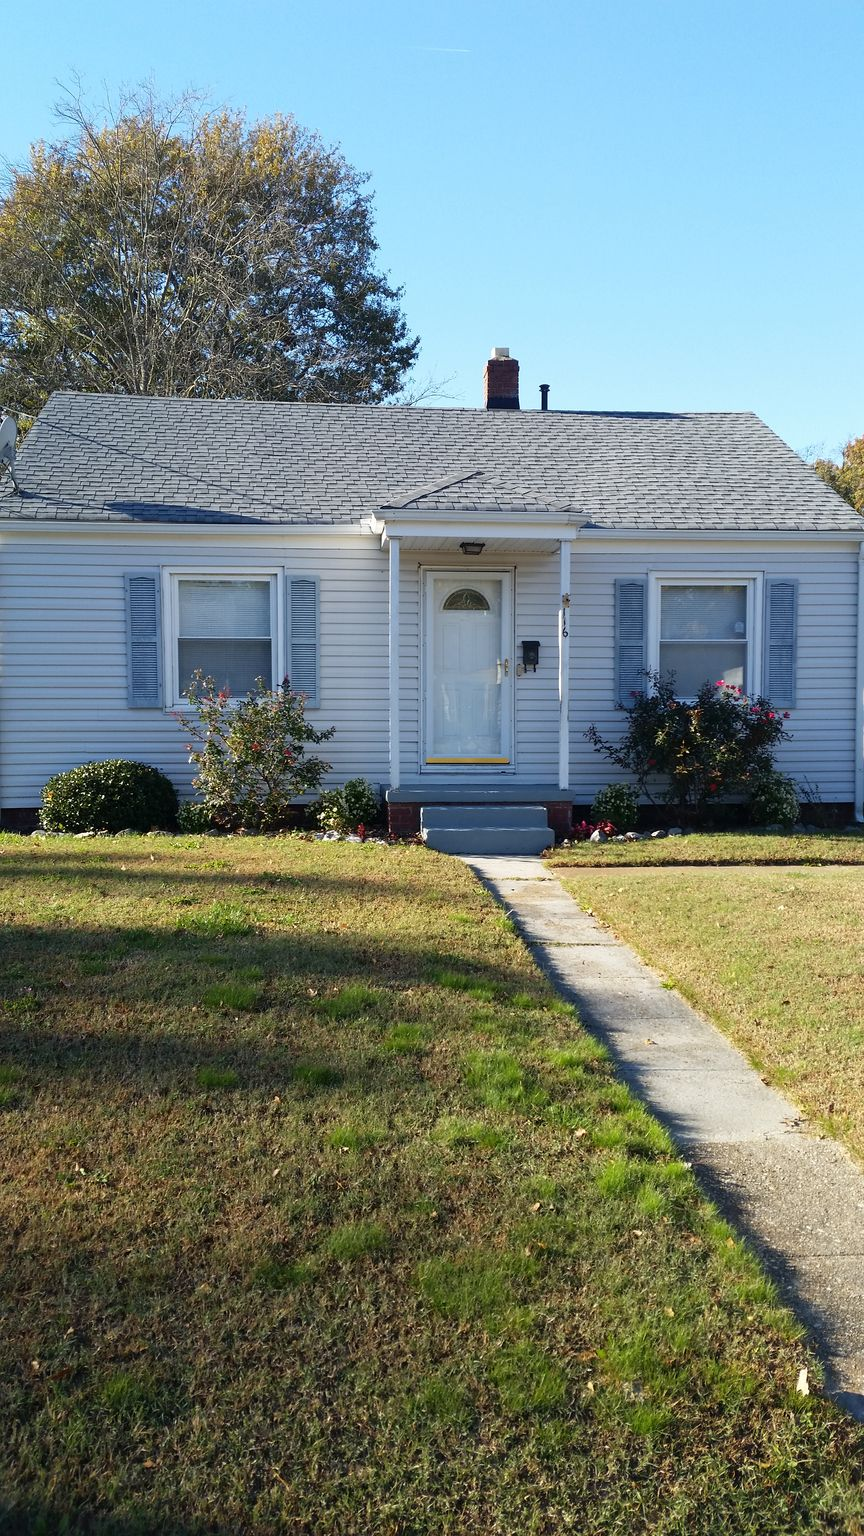 116 Shea St, Portsmouth, VA 23701 | Trulia